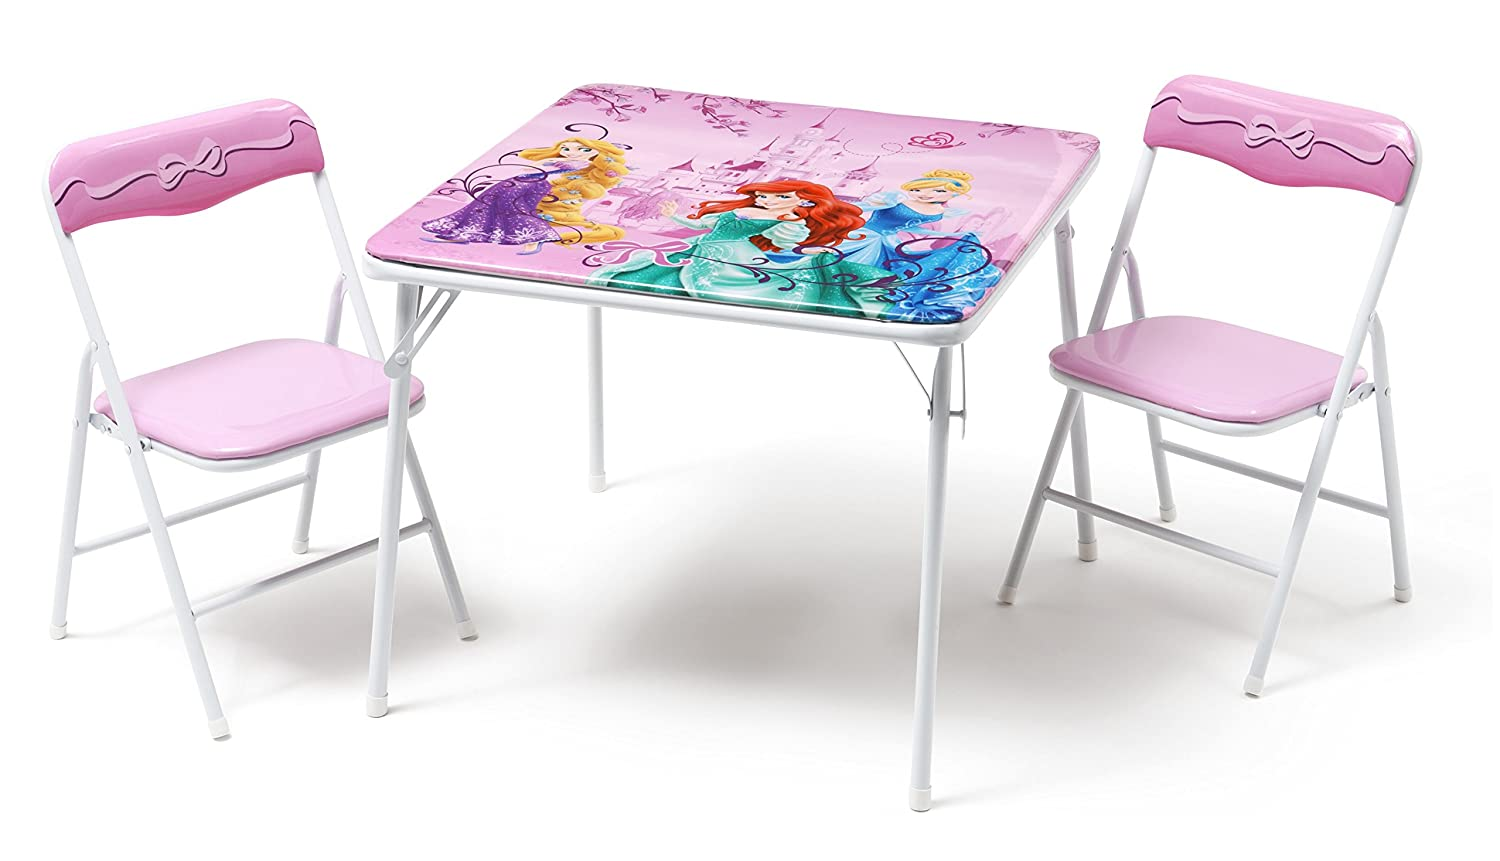 sc 1 st  Amazon UK & Disney Princess Metal Table and Chair Set: Amazon.co.uk: Baby